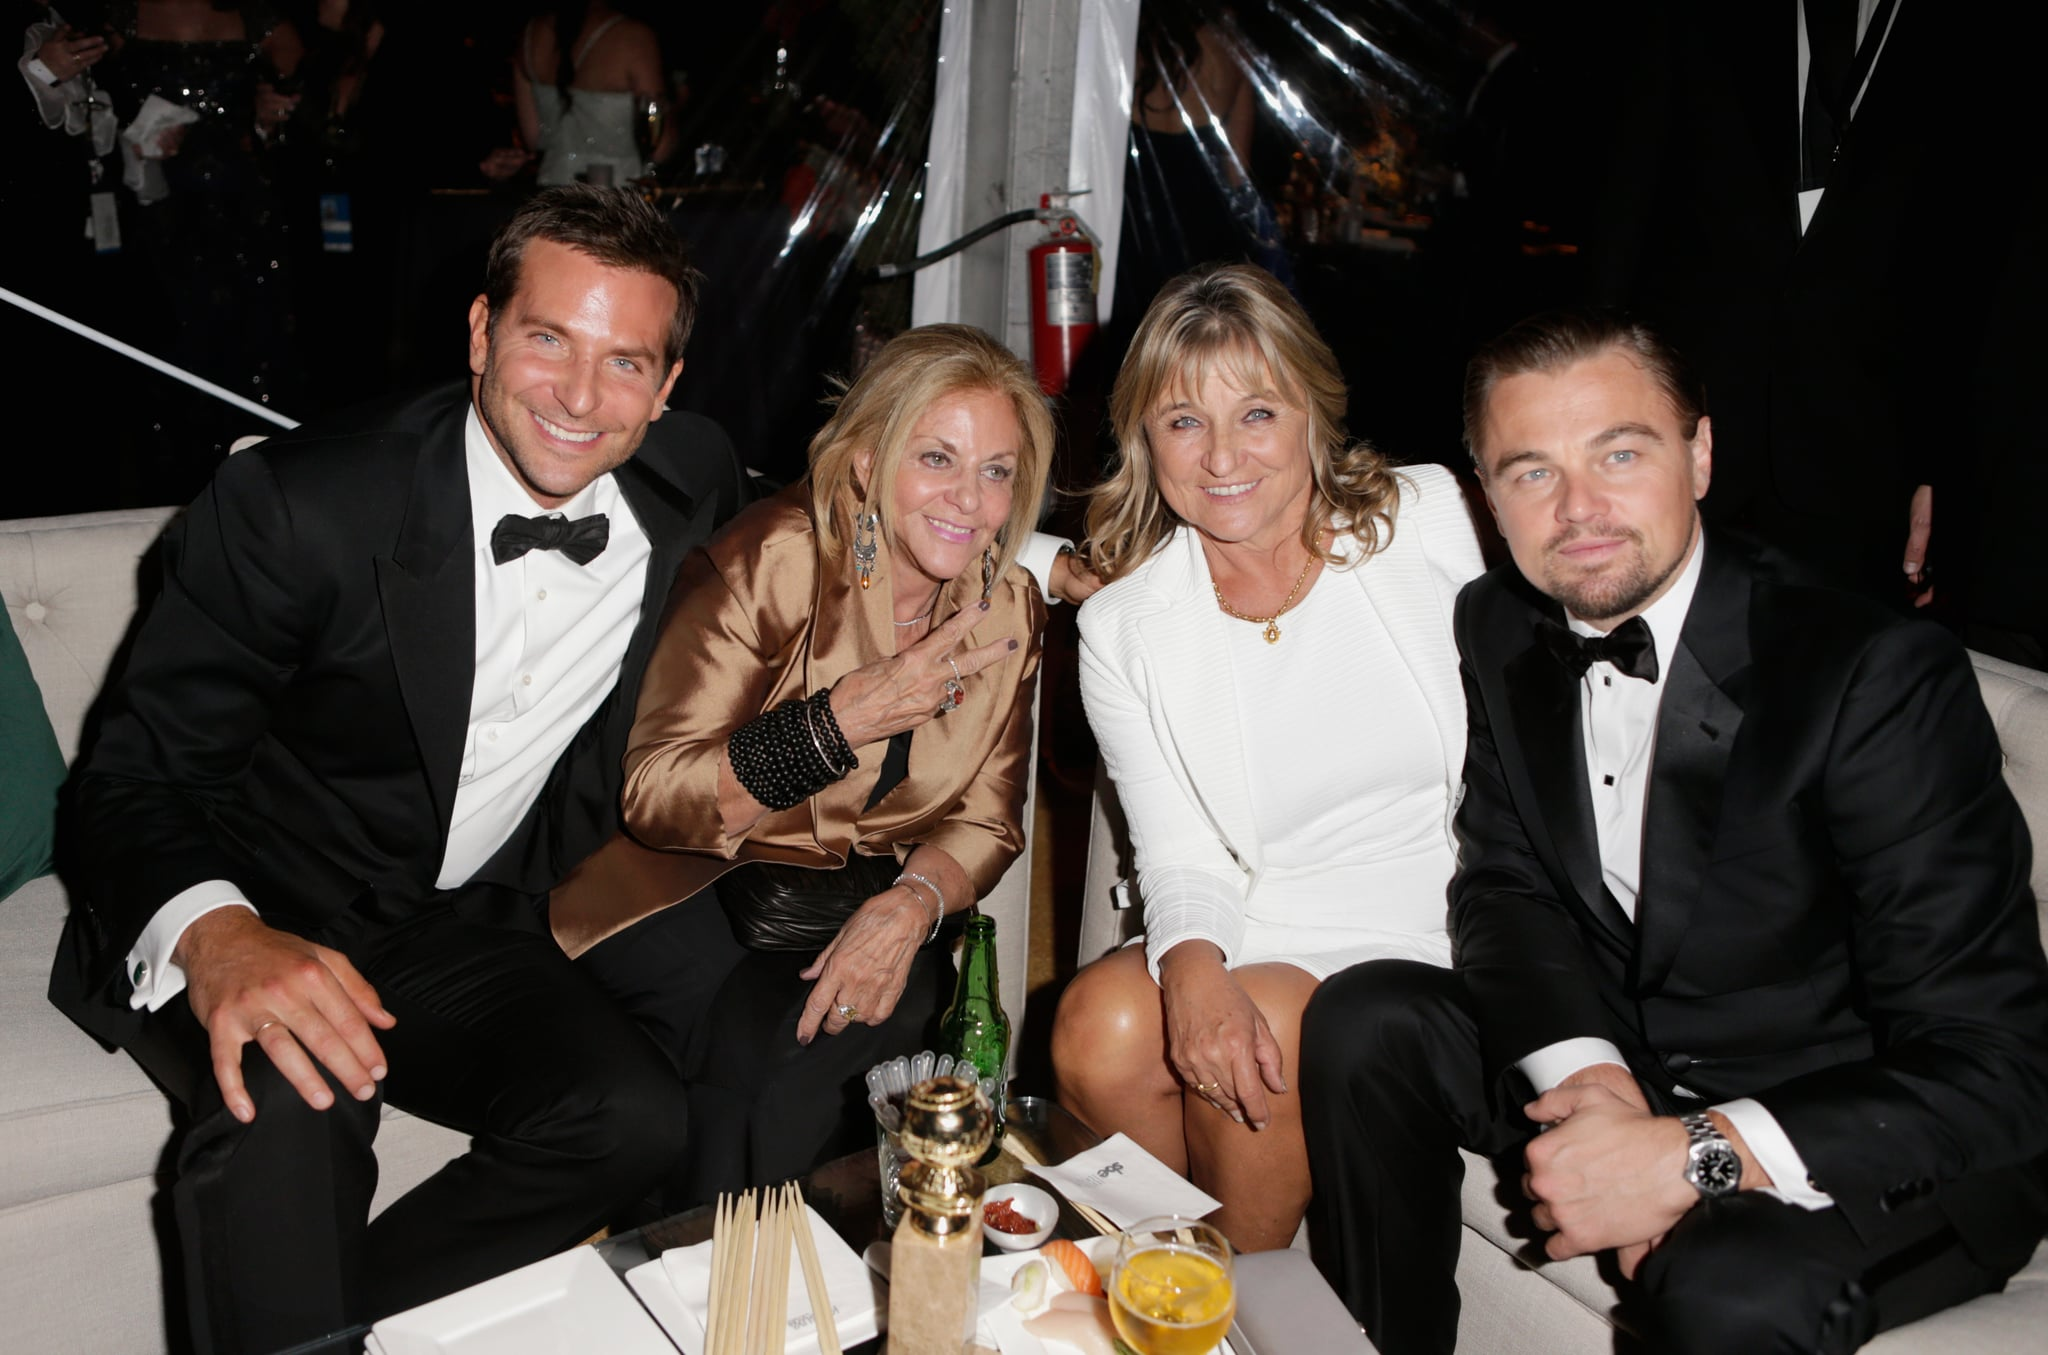 Mama's boys! Leonardo DiCaprio and Bradley Cooper got together with their moms at the Weinstein Company Globes afterparty.